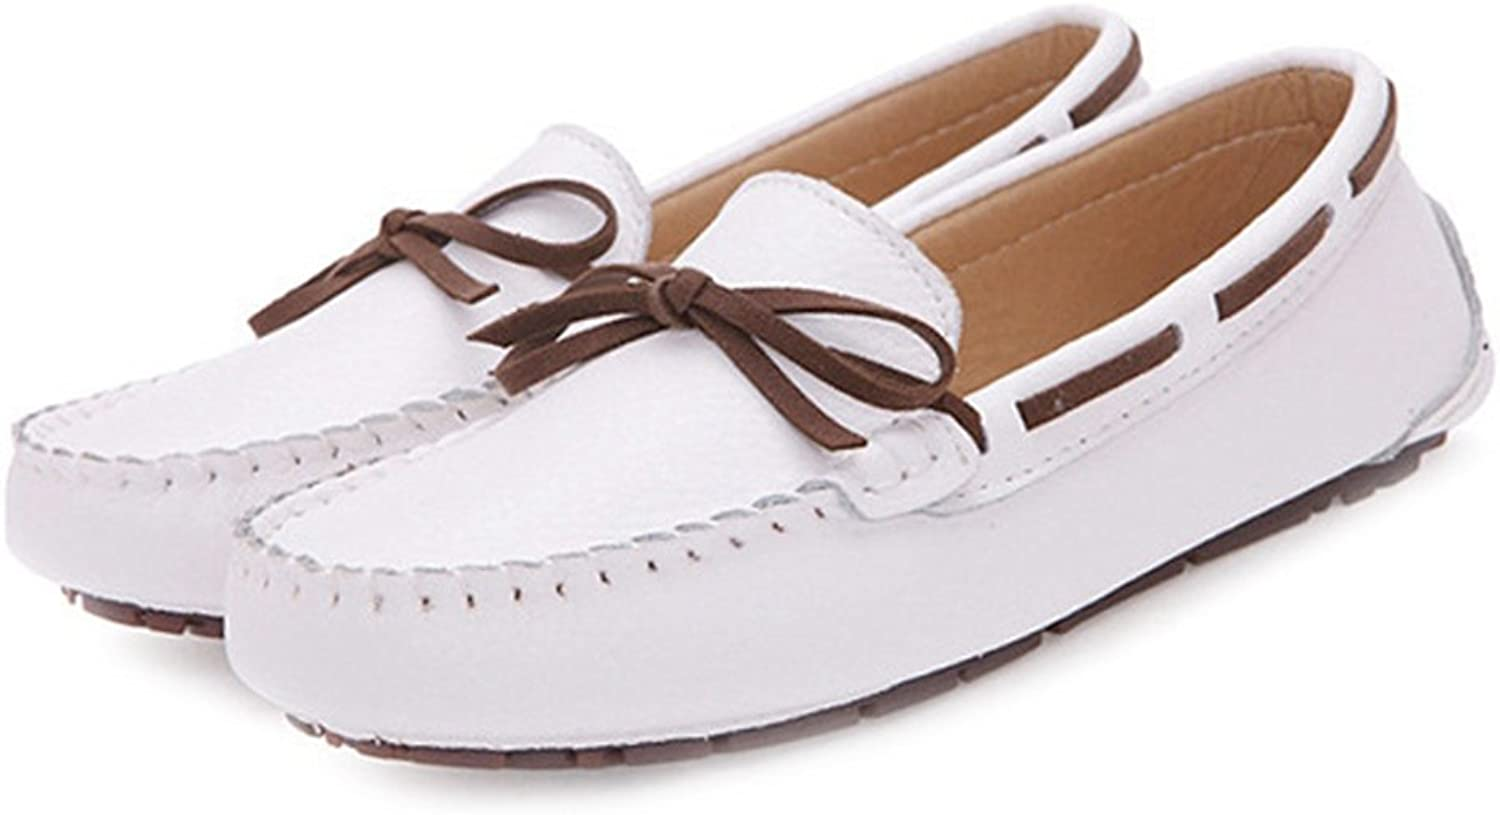 T-JULY Women's Bowknot Loafers shoes Fashion Casual Lightweight Non-Slip Moccasin Flat shoes